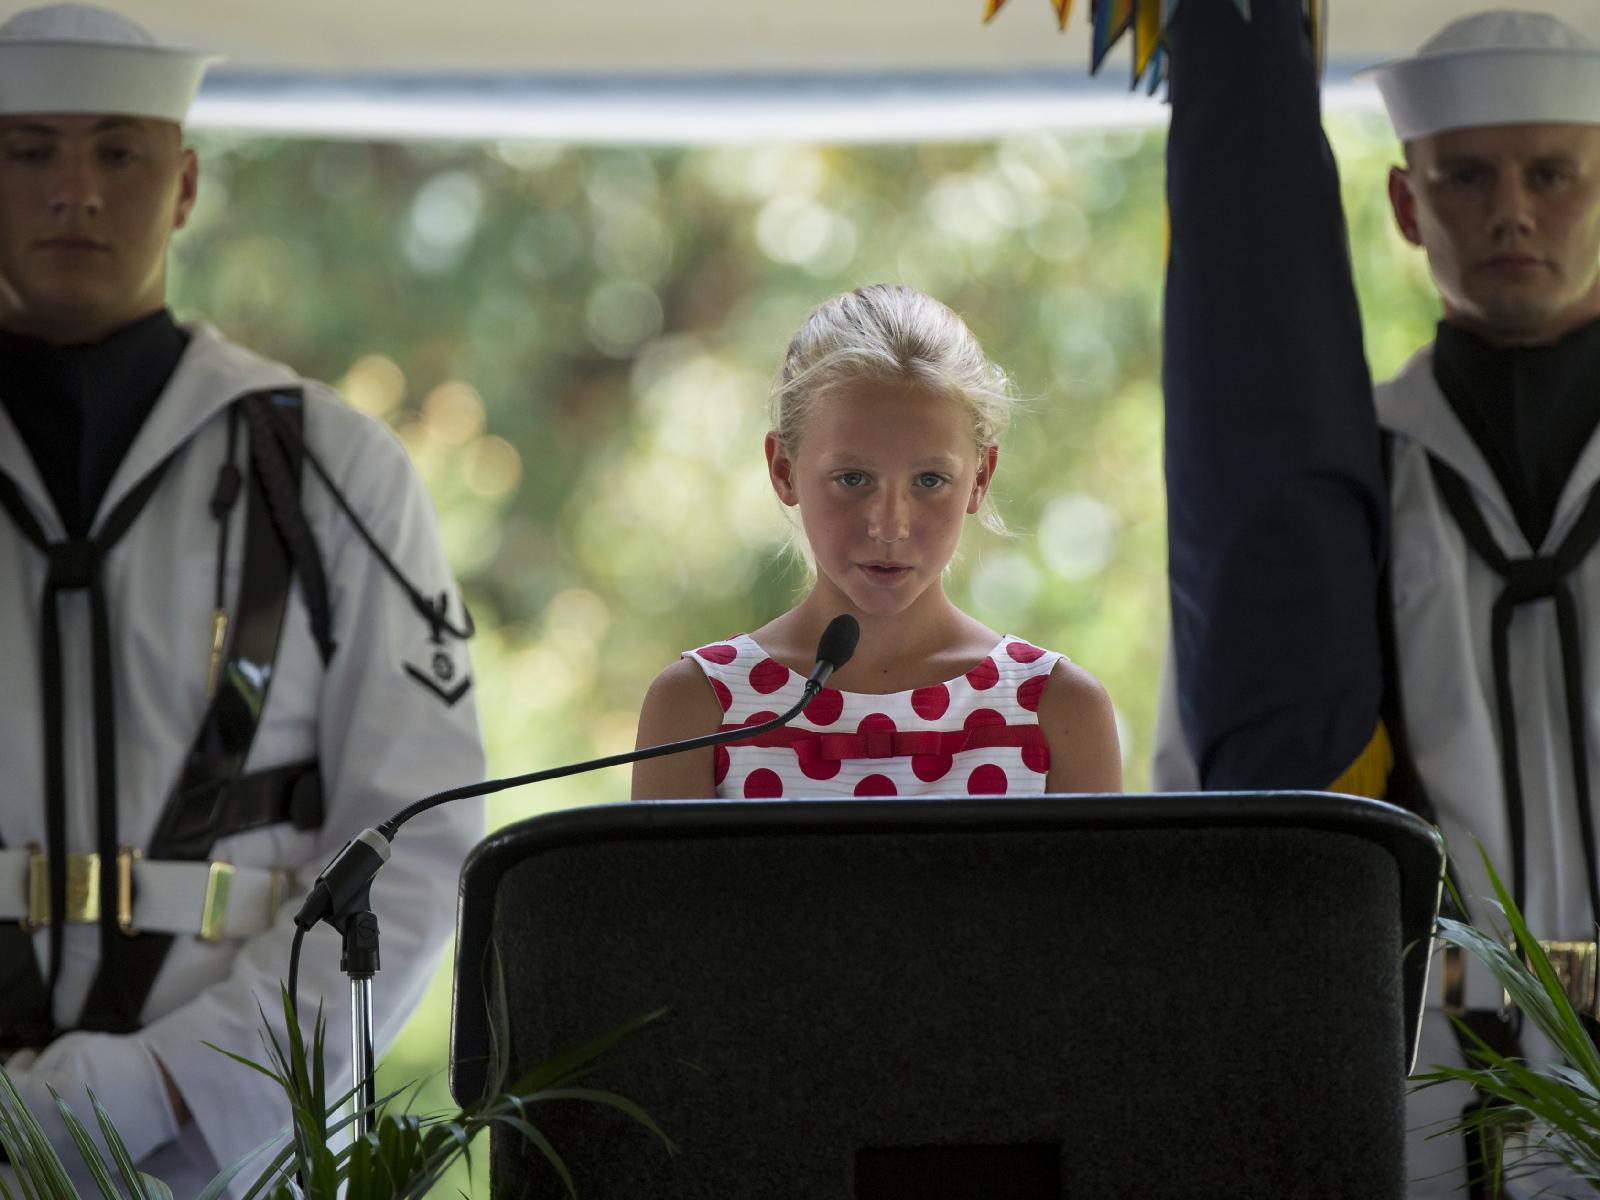 Neil Armstrong Memorial: Granddaughter Speaks